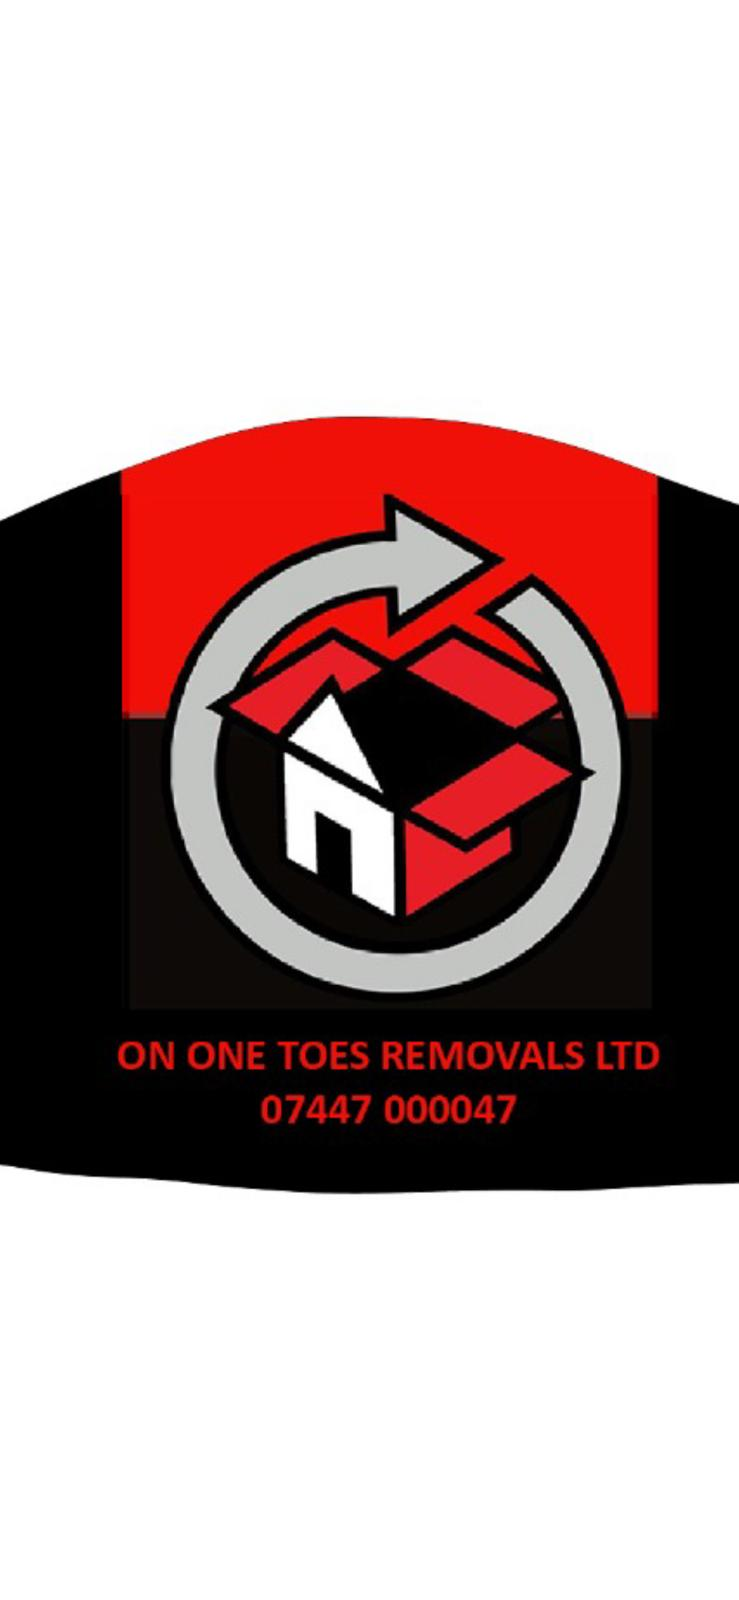 Logo of On One Toes Removals LTD Household Removals And Storage In Sawbridgeworth, Hertfordshire